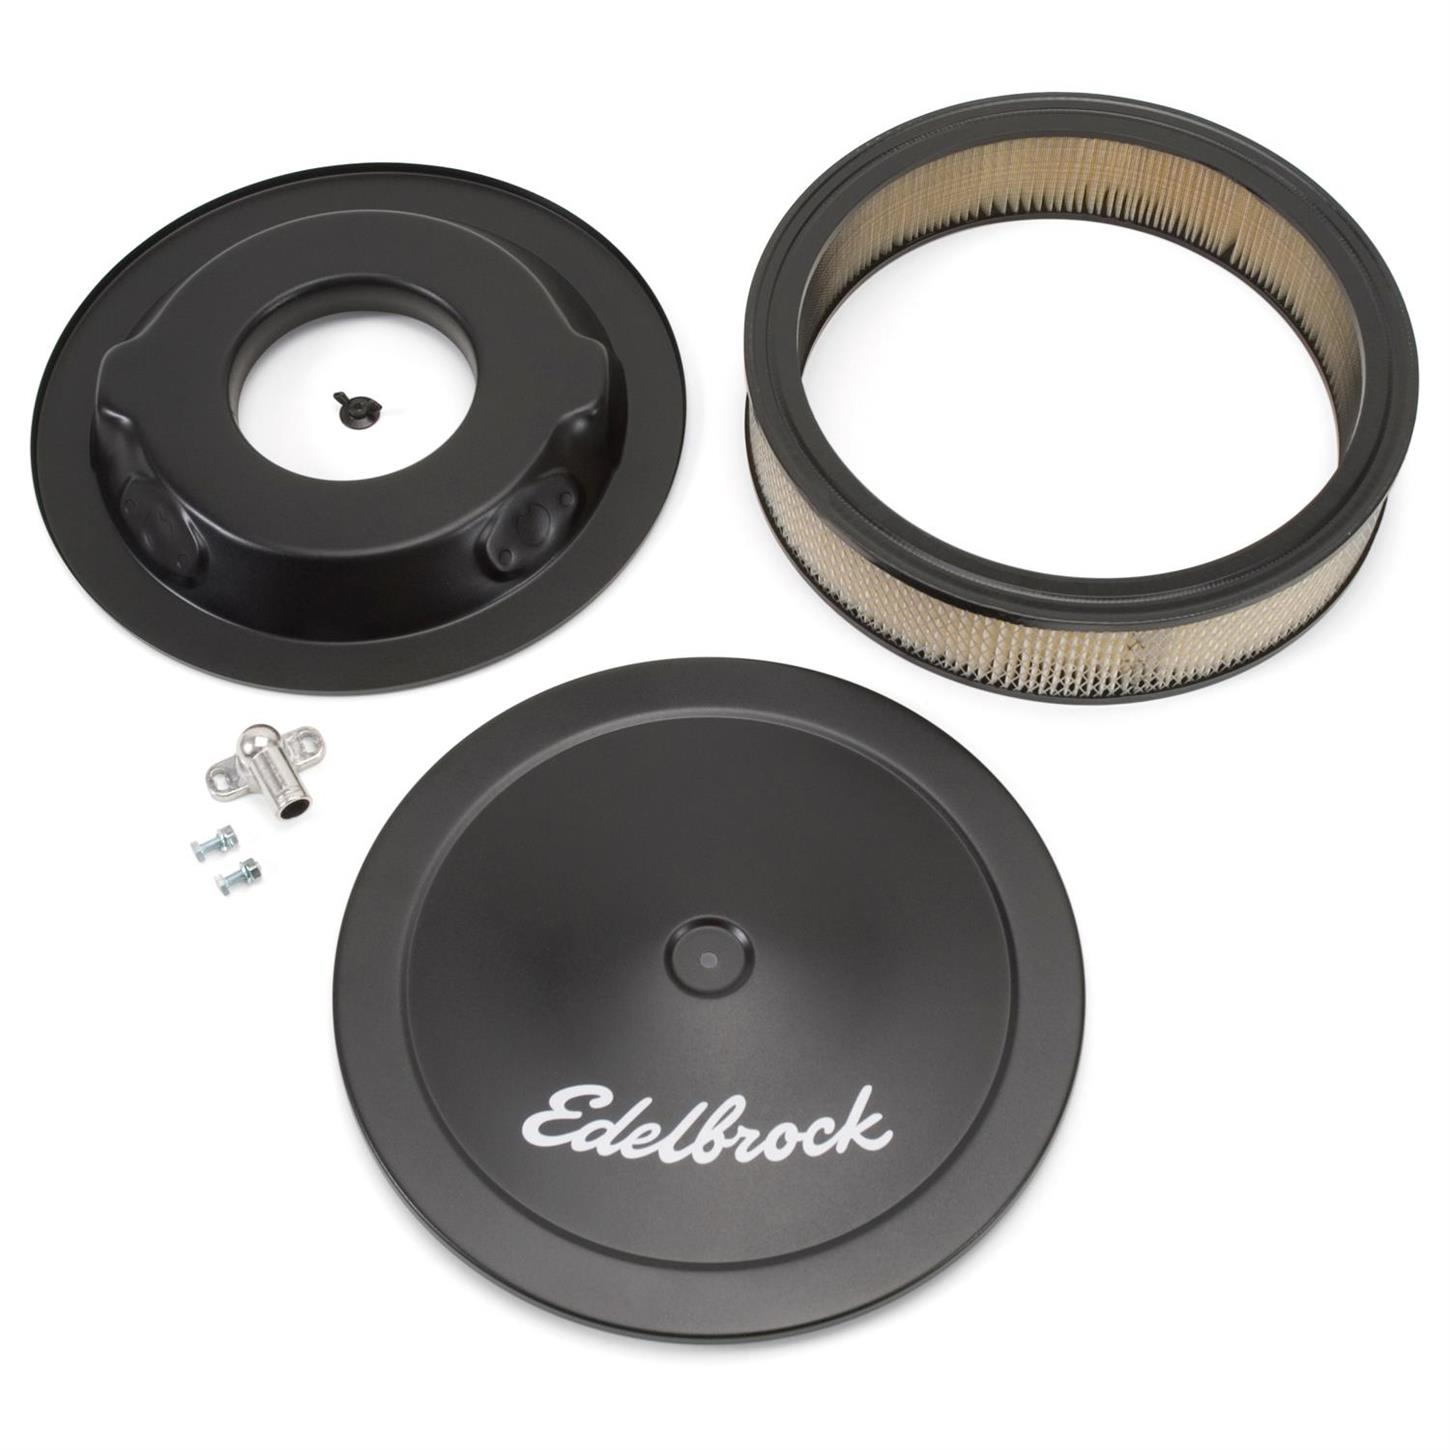 Edelbrock 1207 Pro-Flo Series 14 in Round Air Cleaner Assembly